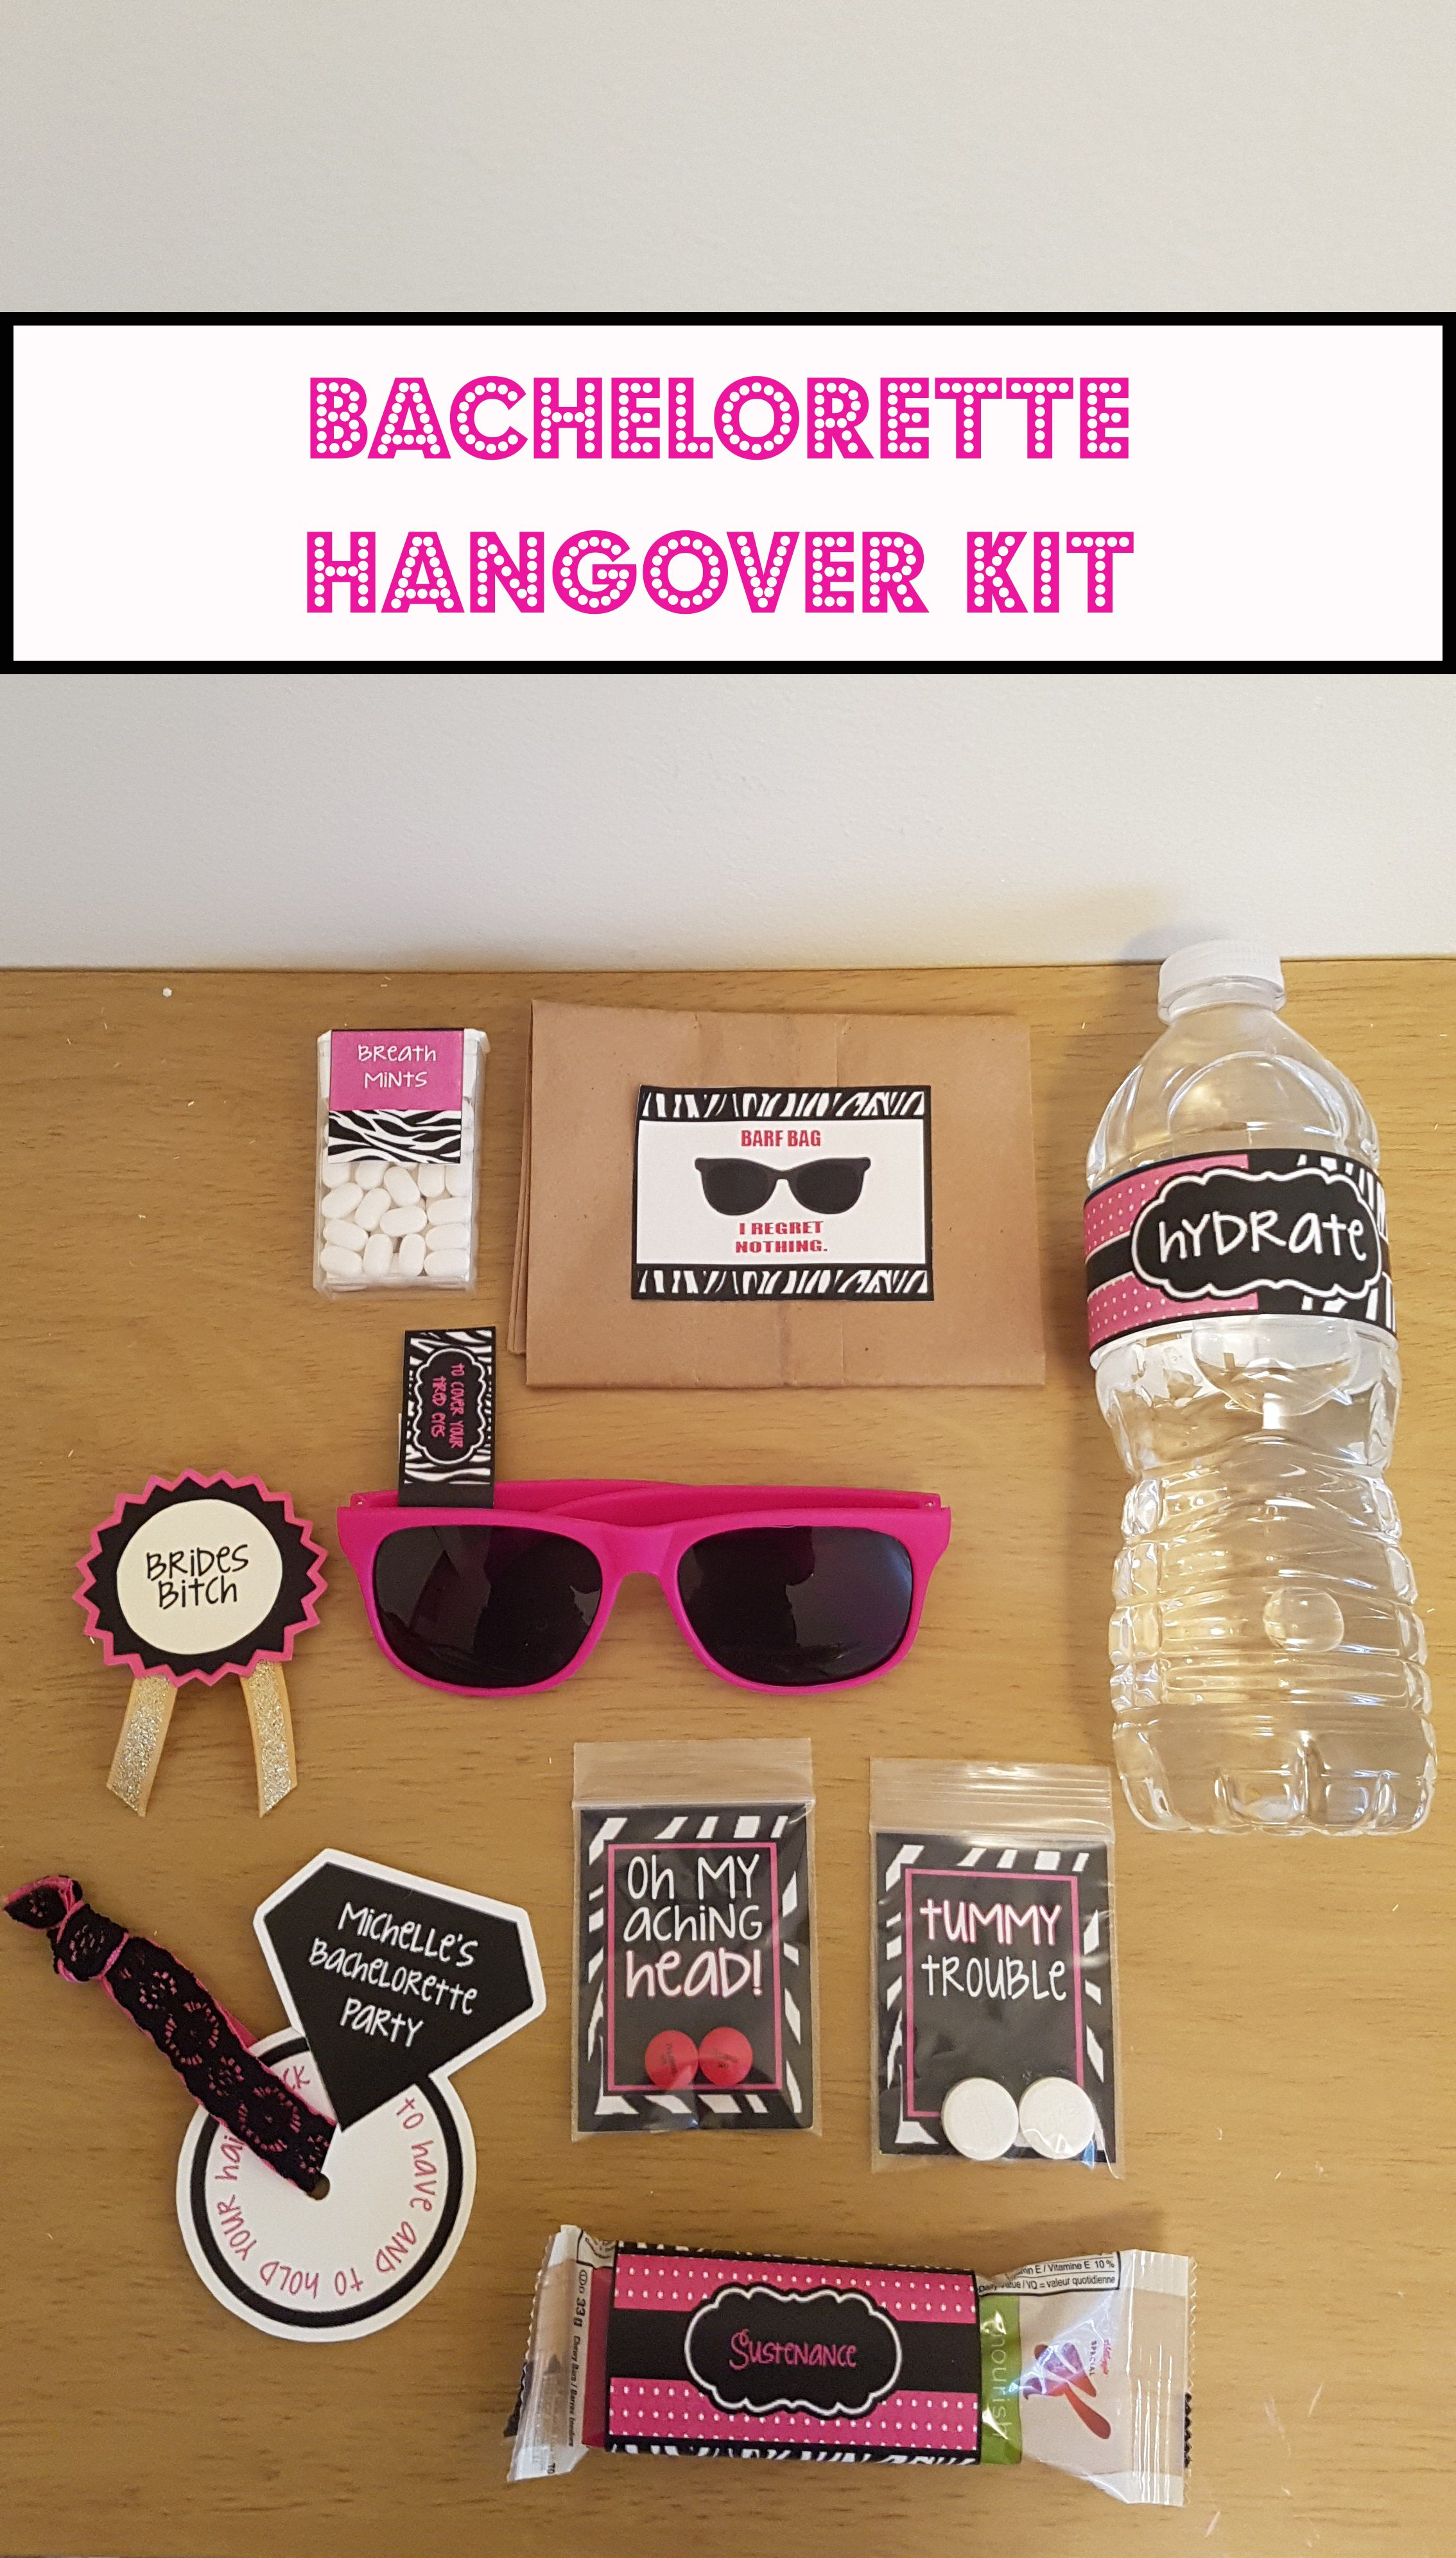 Bachelorette hangover kit supplies water to hydrate